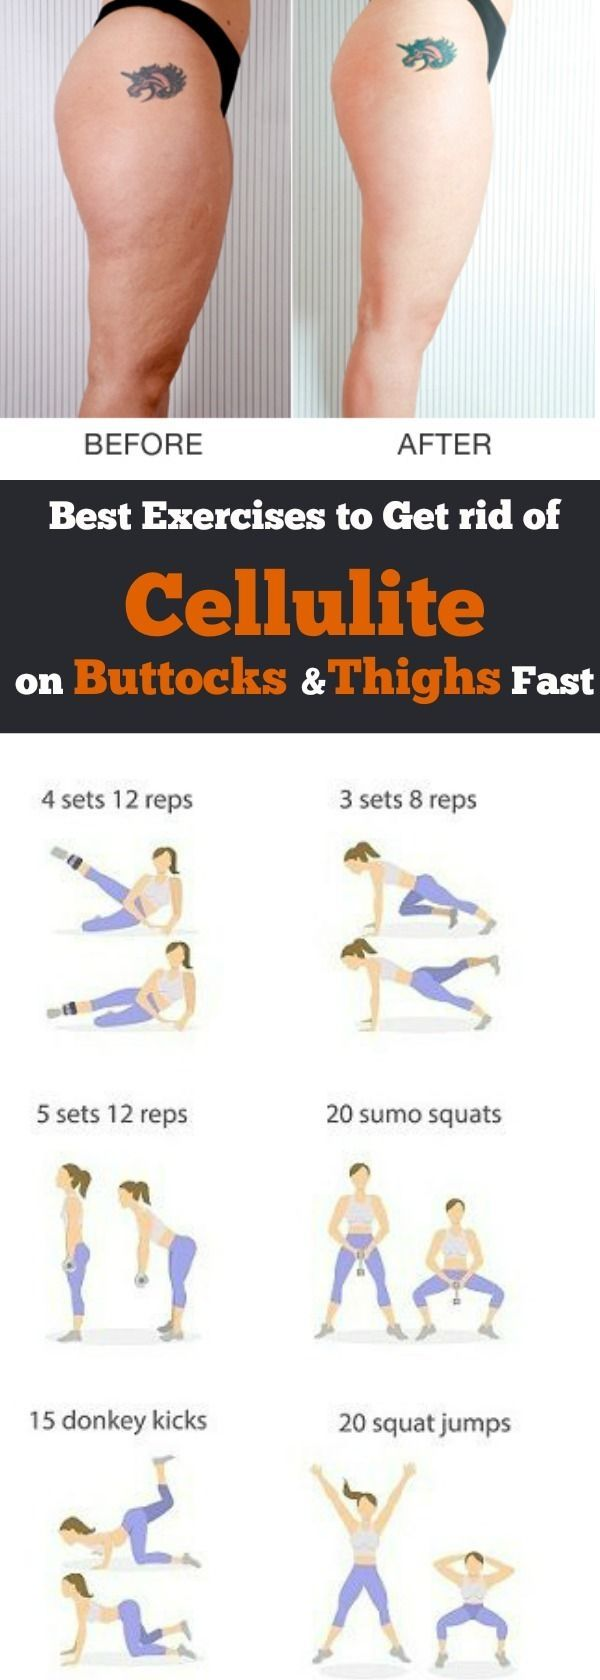 7 Best Exercises to Get rid of Cellulite on Buttocks and Thighs Fast by Shanpery